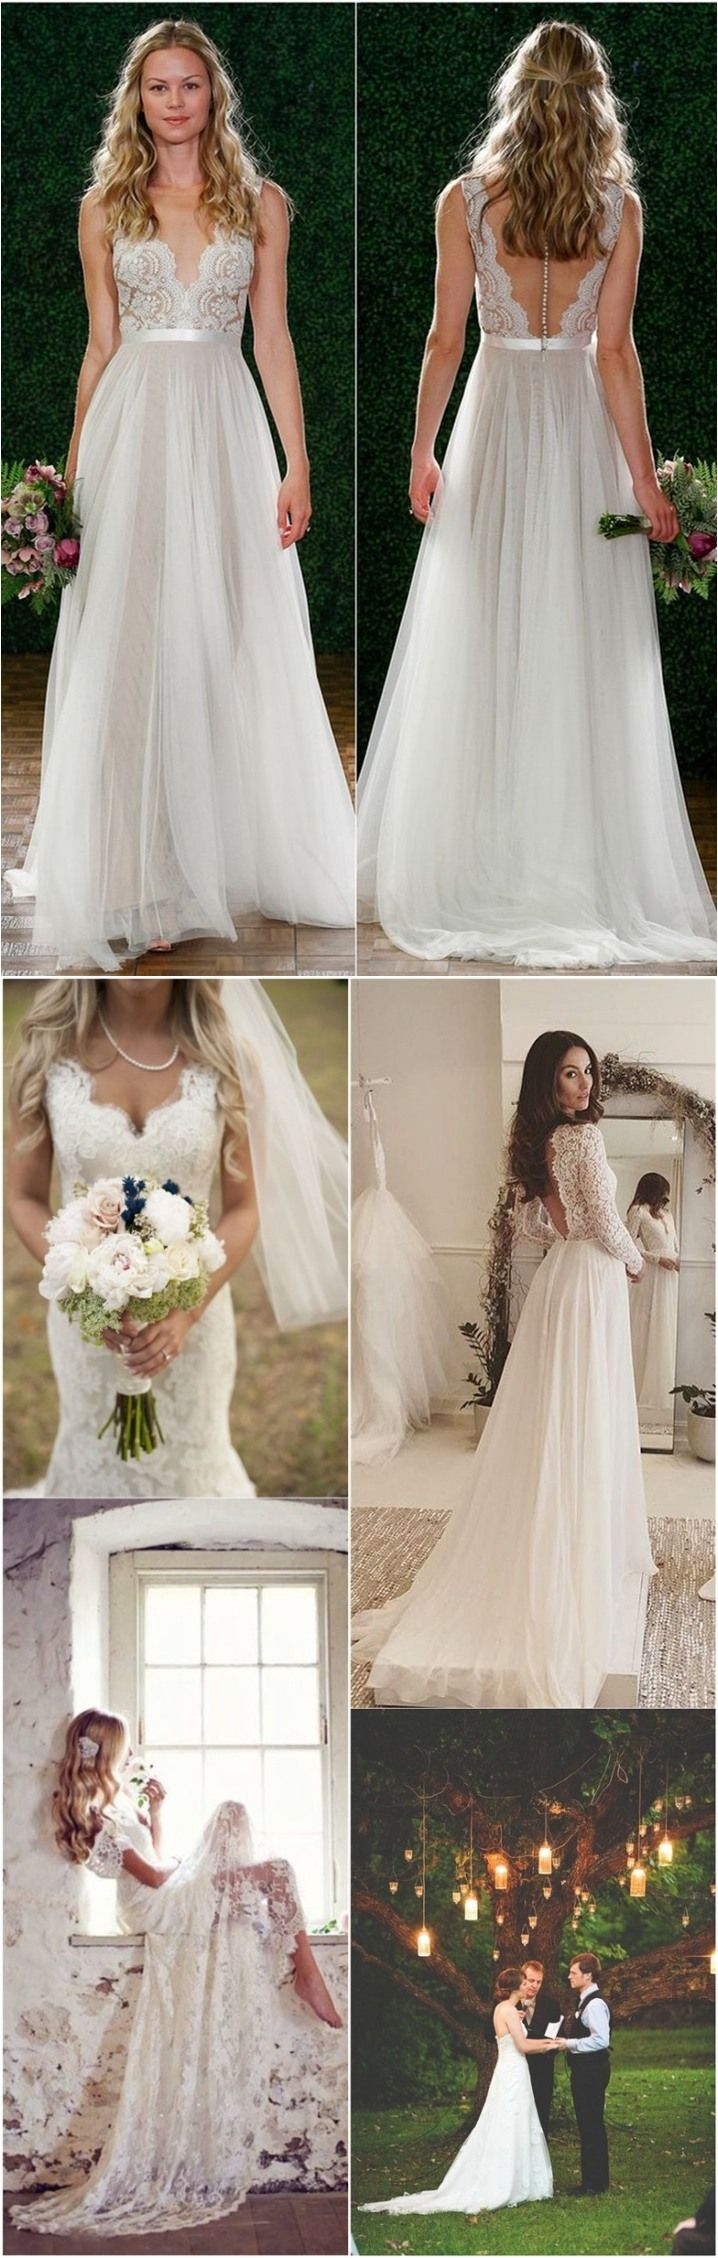 792 best Wedding images on Pinterest | Wedding bridesmaid dresses ...